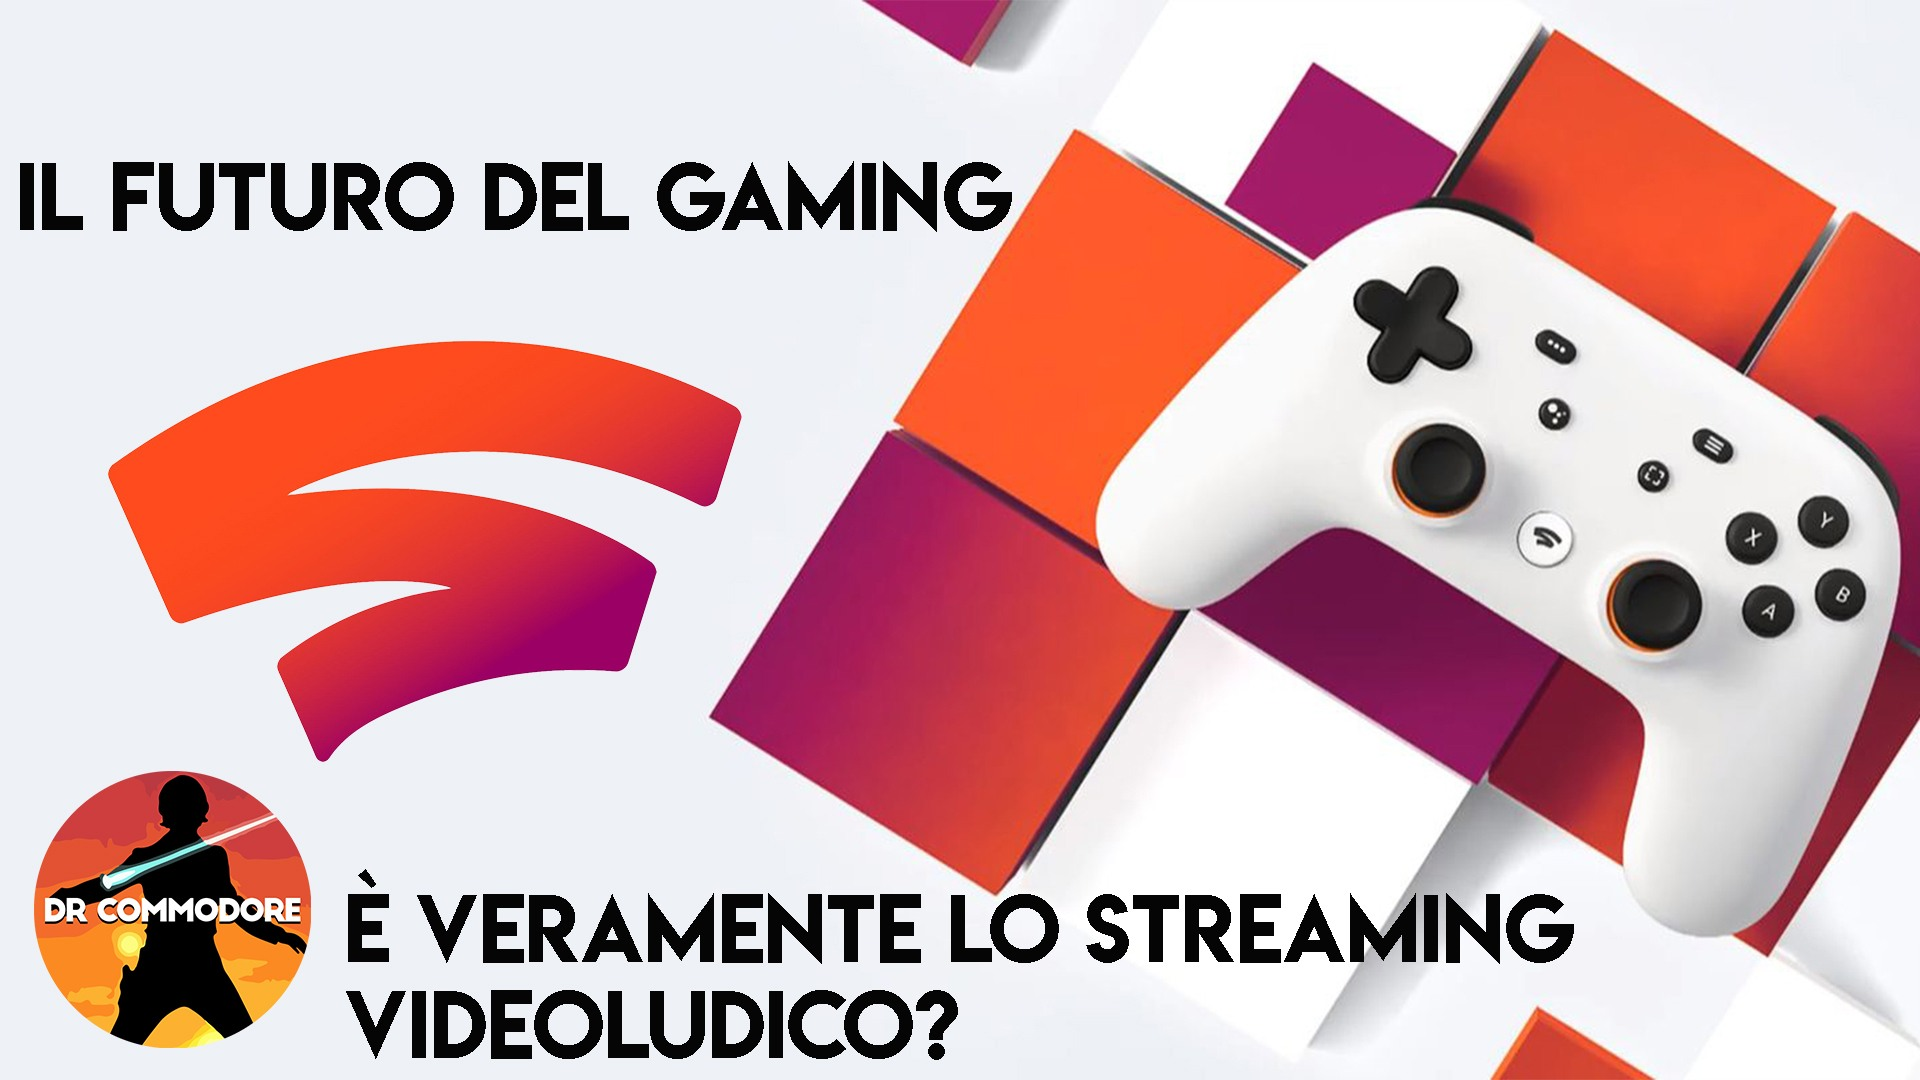 Streaming videoludico